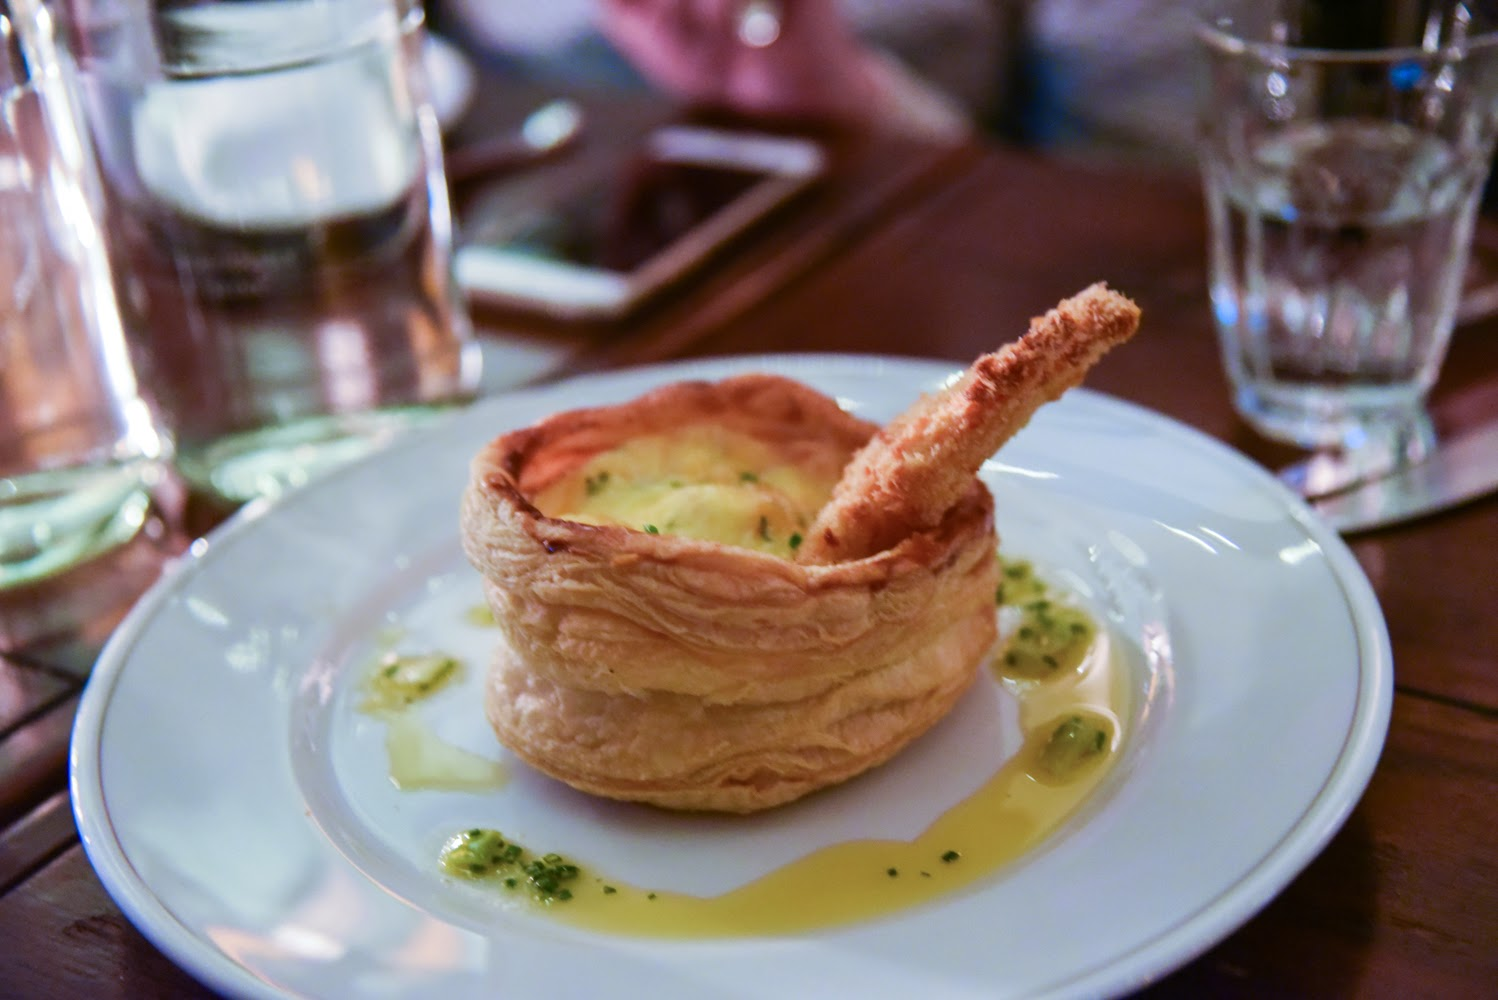 Lobster thermidor tart at Holborn Dining Room London's Poshest Dishes